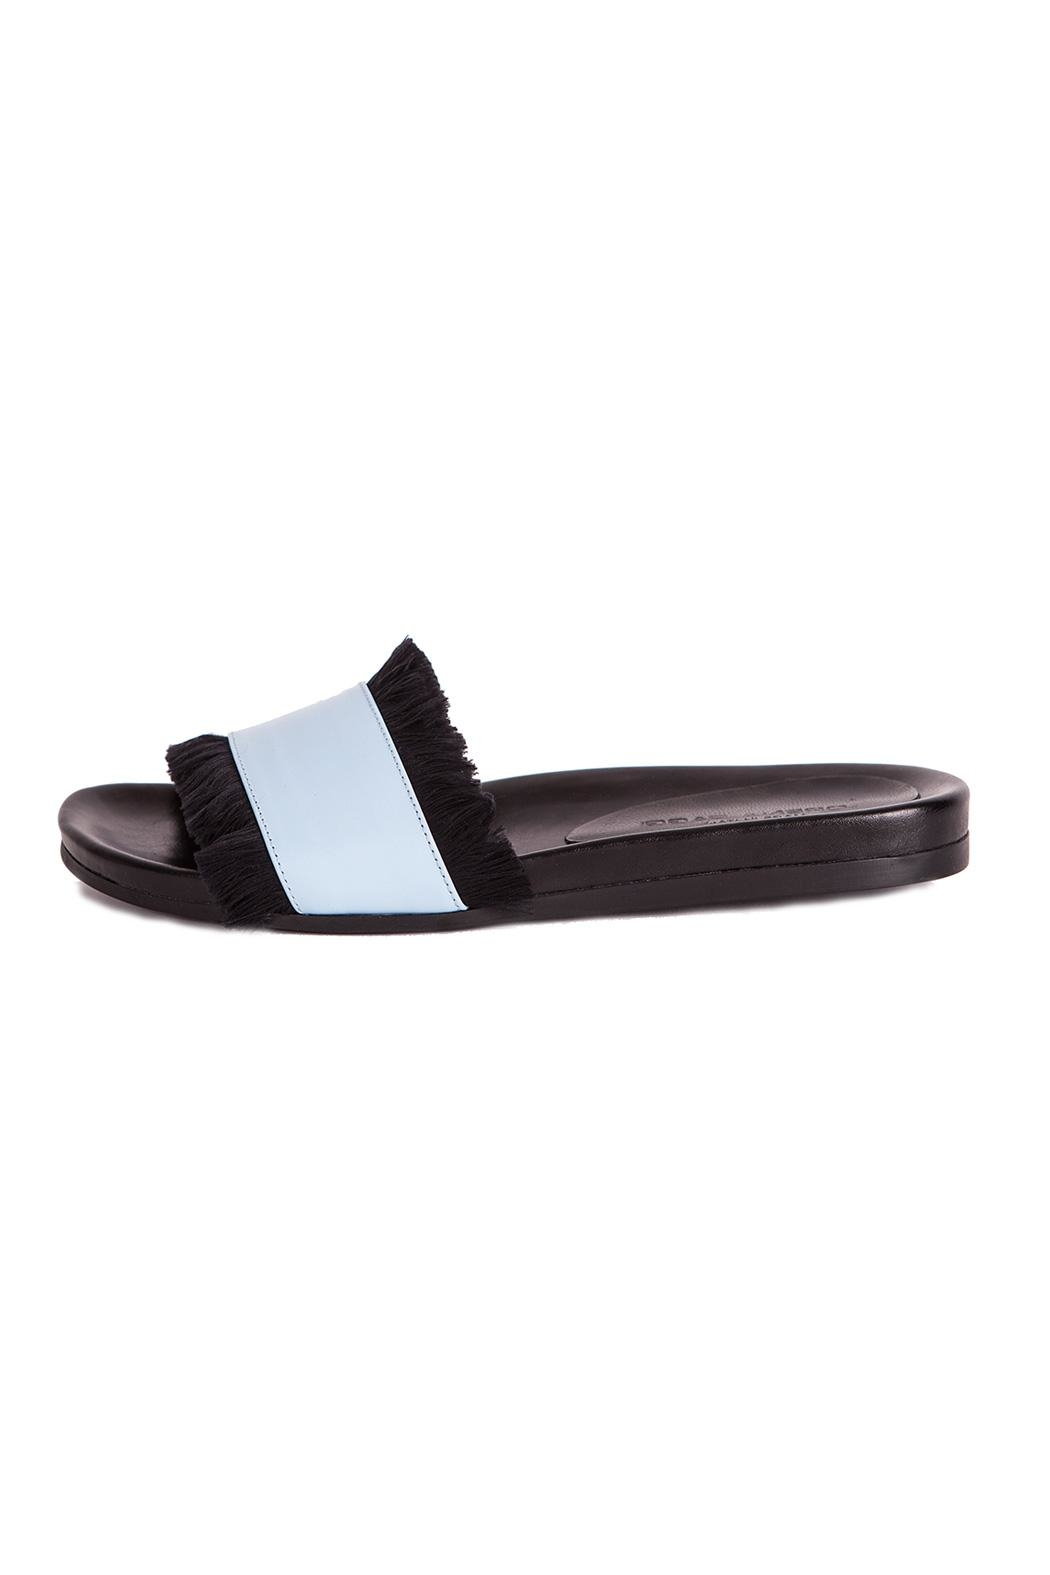 LORENA PAGGI Flat Leather Sandals - Front Full Image